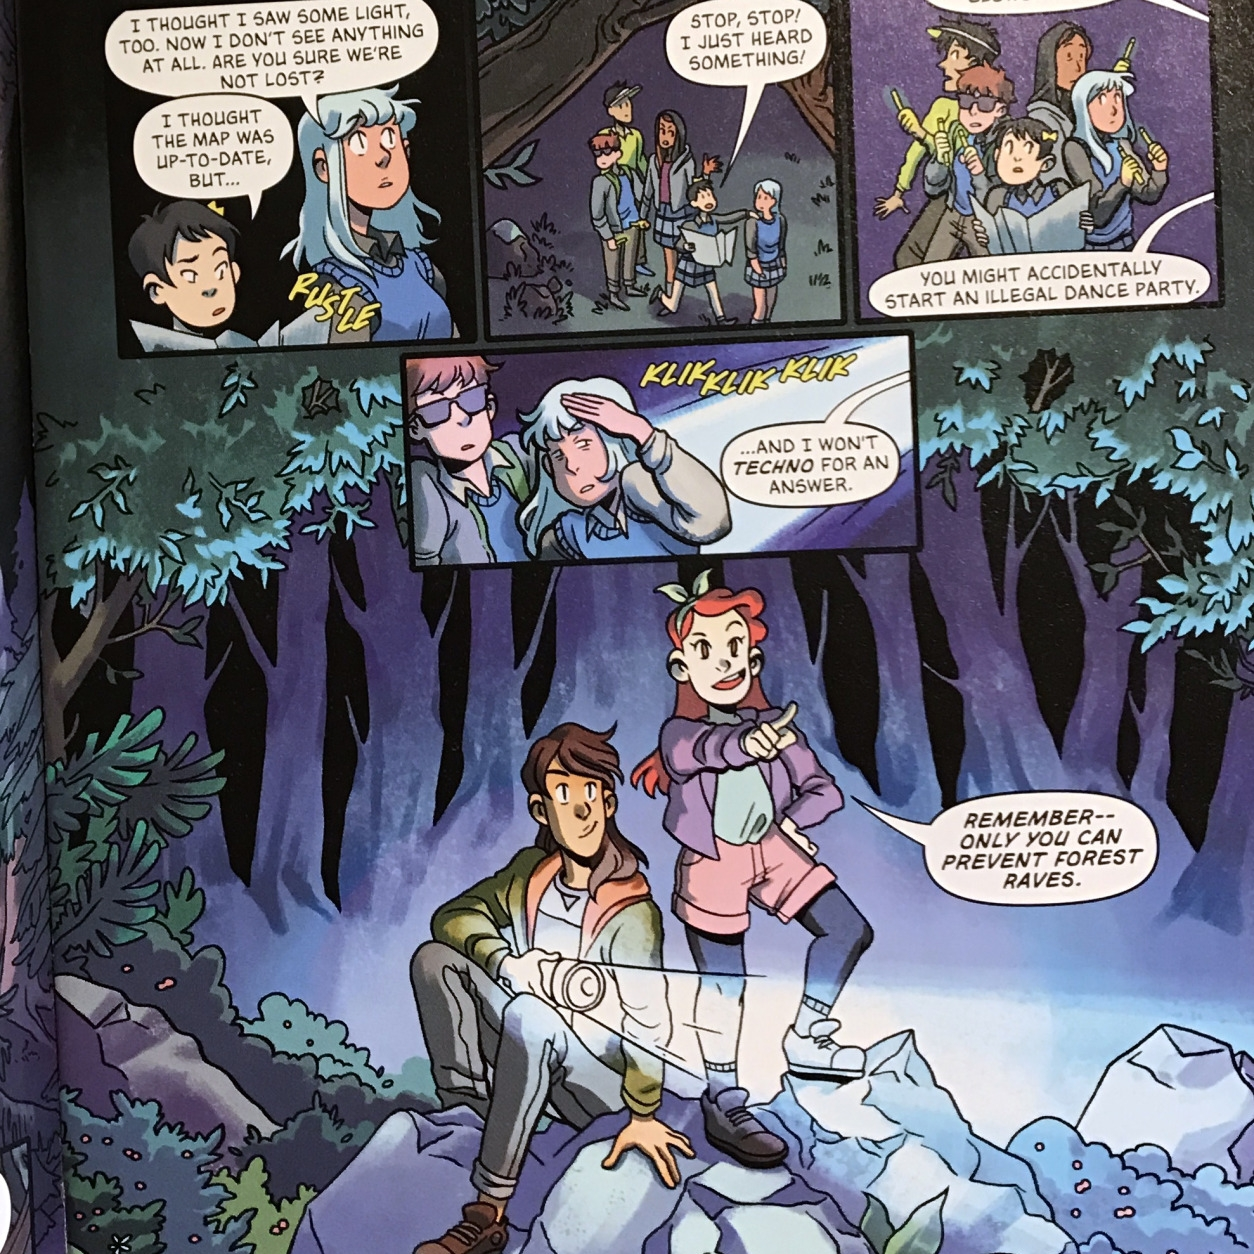 Great Charlotte Hawkins Brown! The Lumberjanes have teamed up with the students of Gotham Academy to make the world a better place.